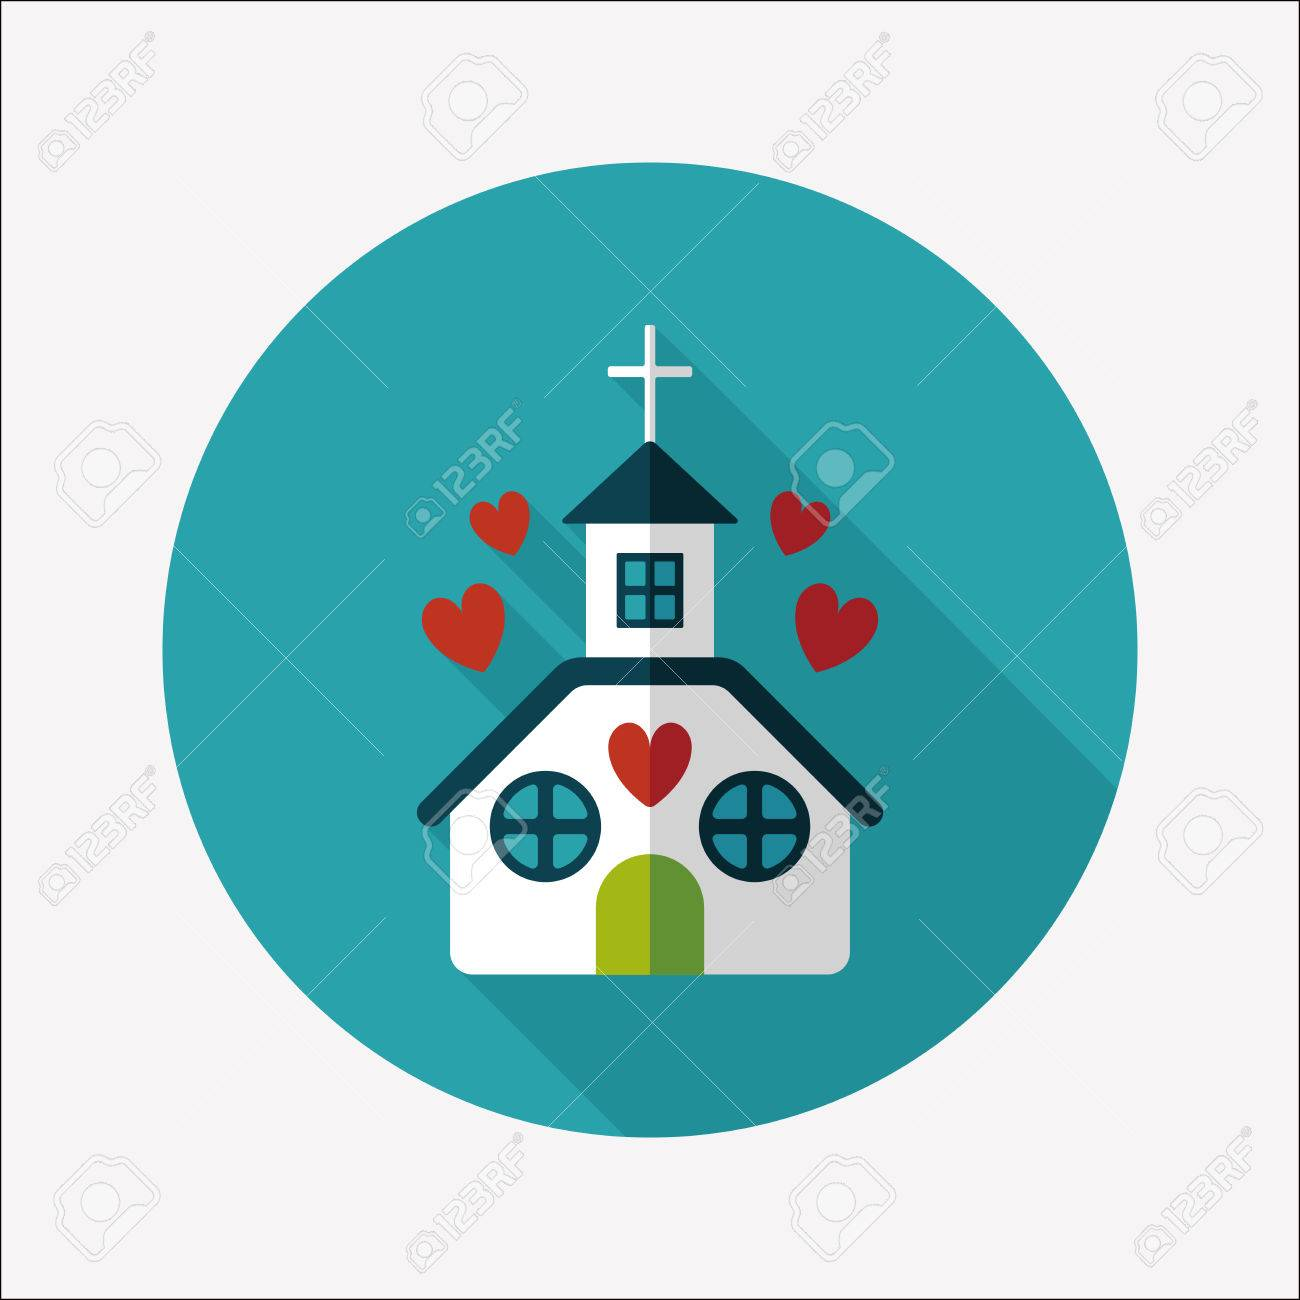 Valentine's Day wedding church flat icon with long shadow,eps10 - 33845956